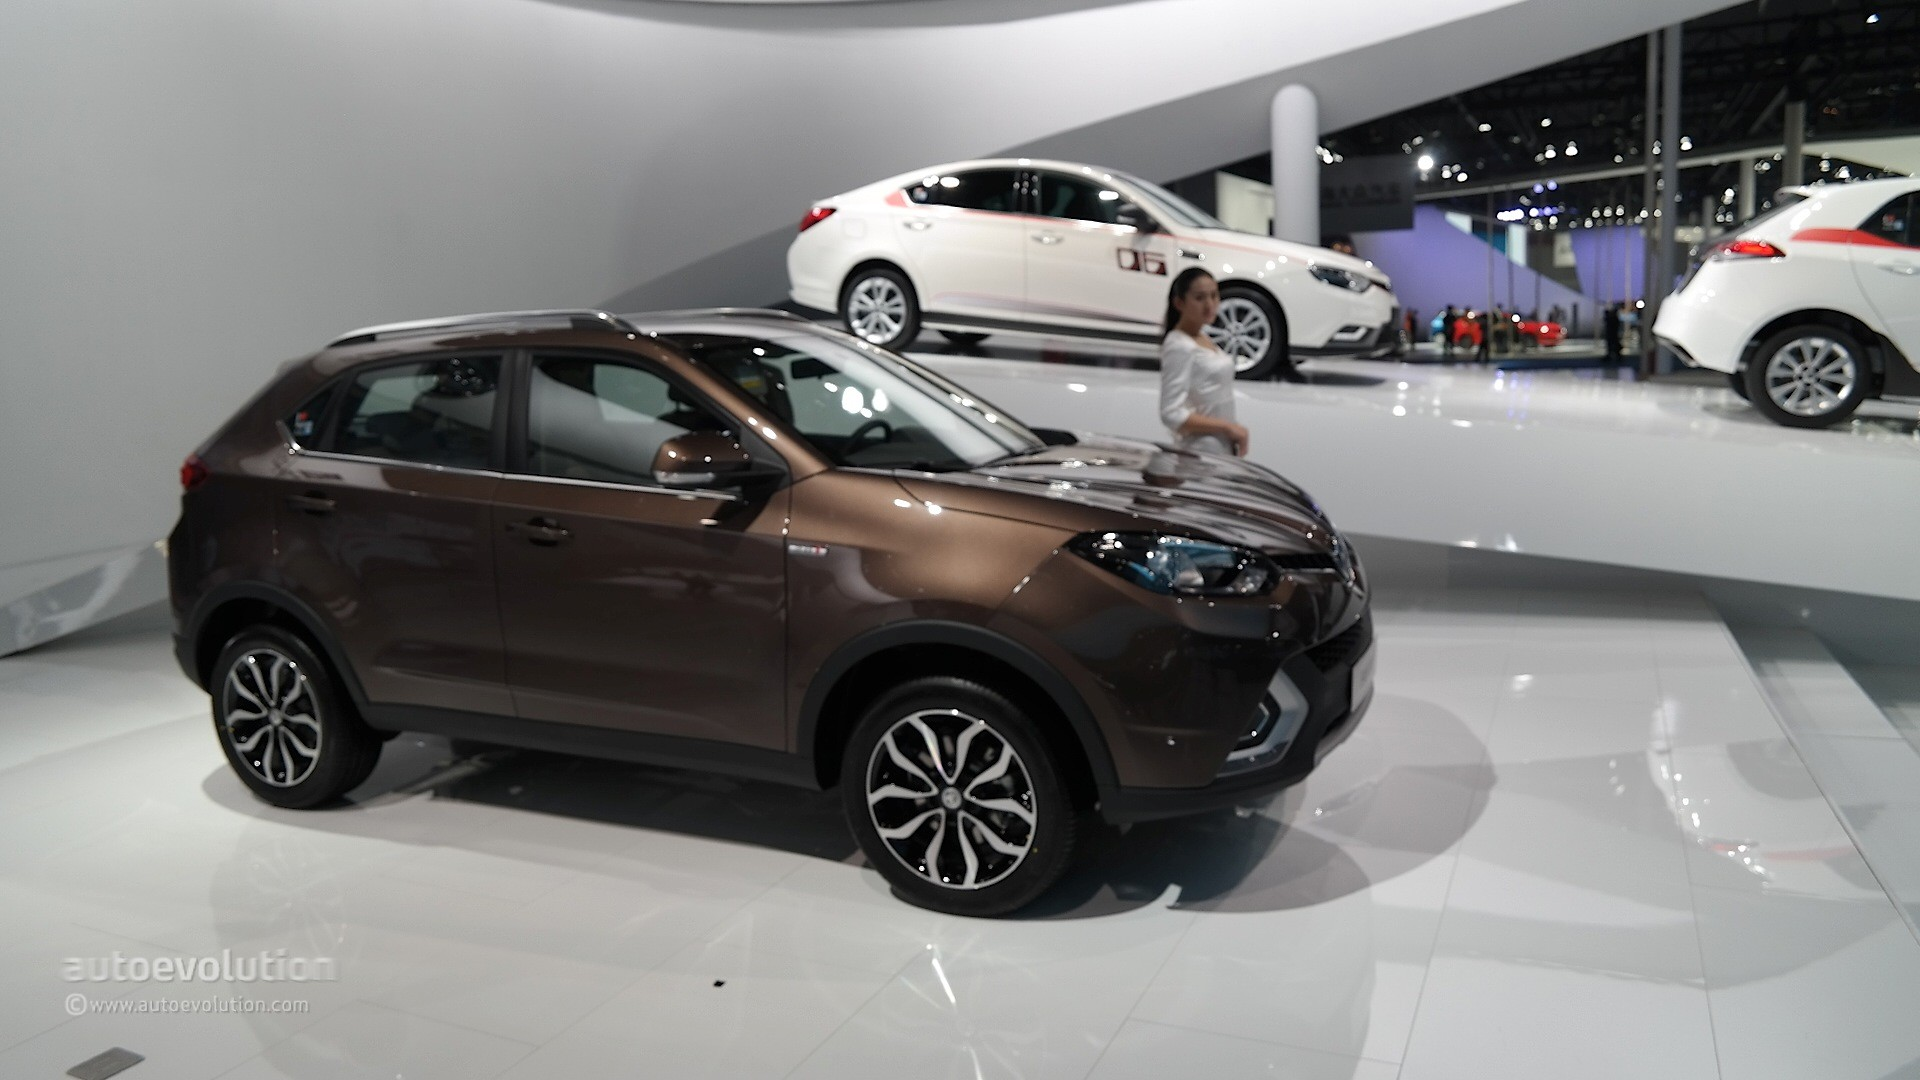 2016 MG GS SUV Priced from £14,995, Undercuts the Nissan Qashqai by £3,550 - autoevolution